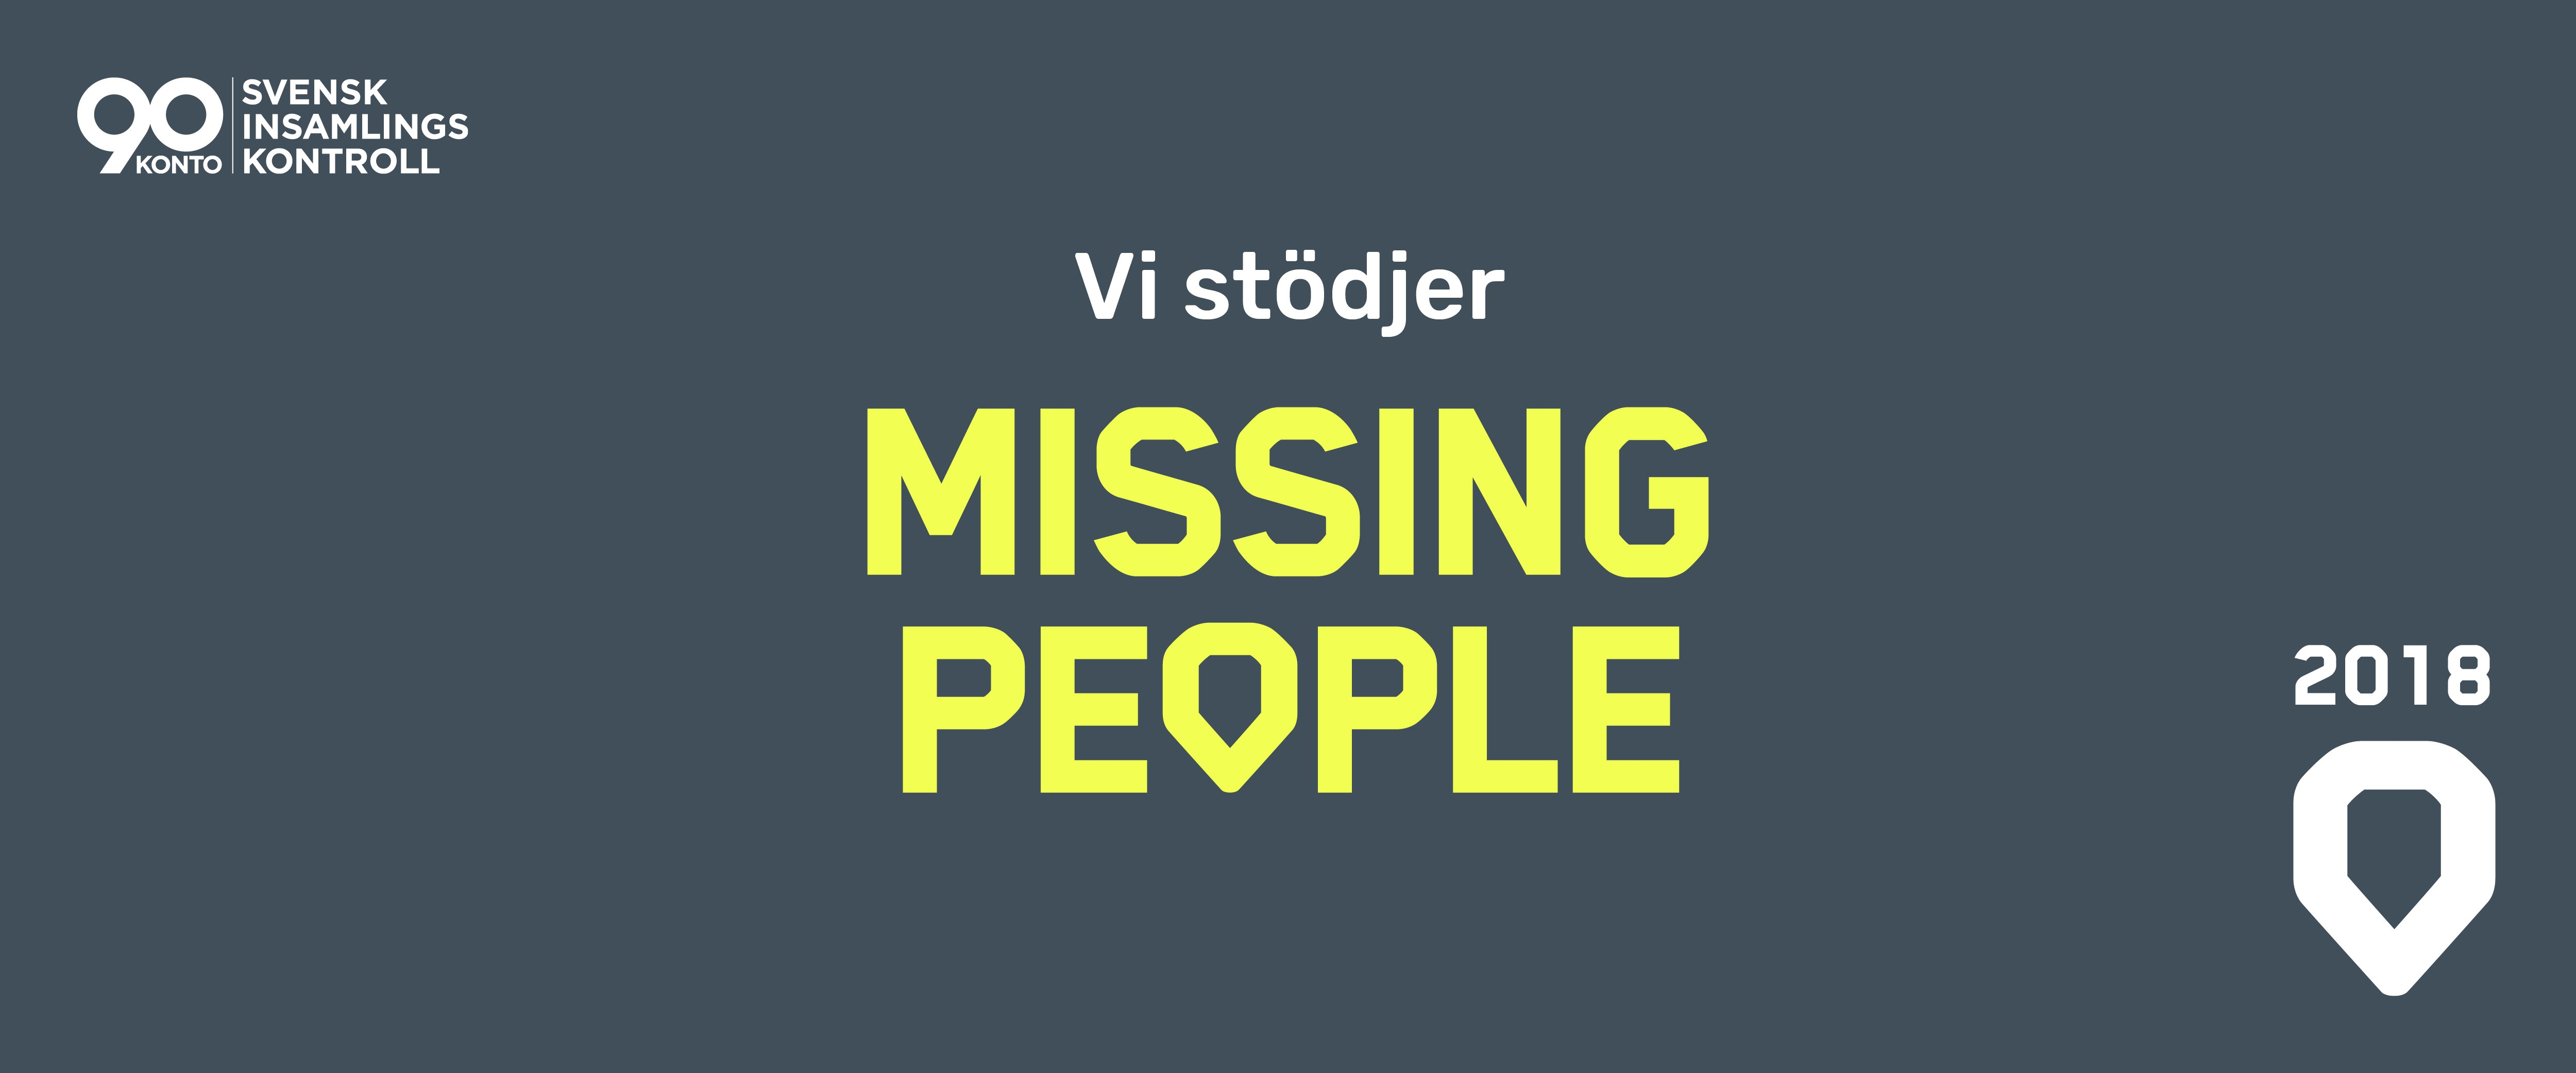 Missing_People_banner_2018.png